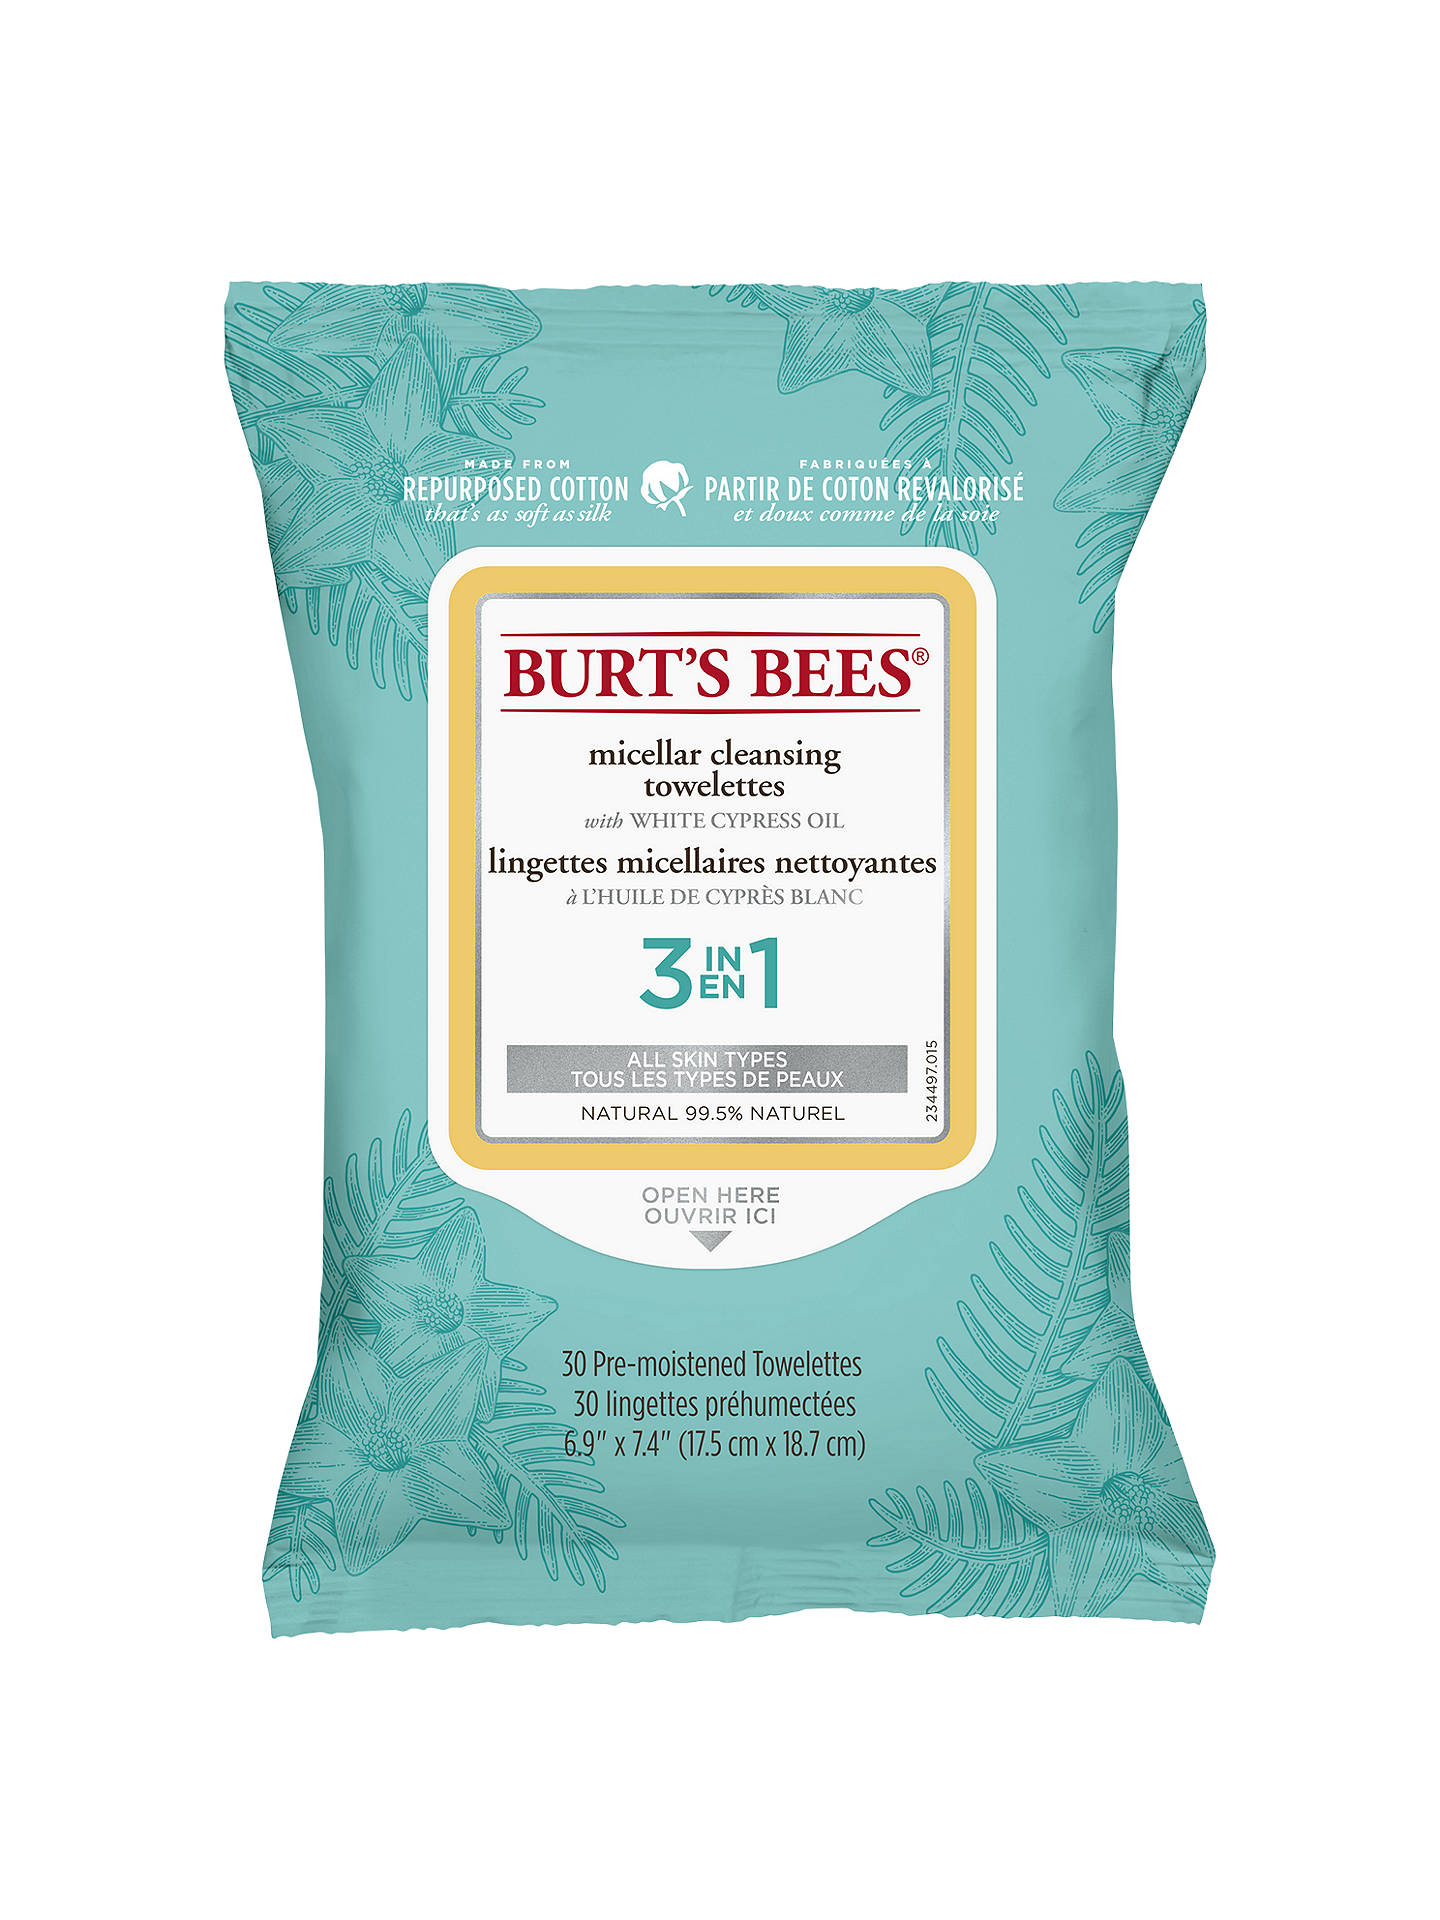 Micellar Cleansing Towelettes by Burt's Bees #15